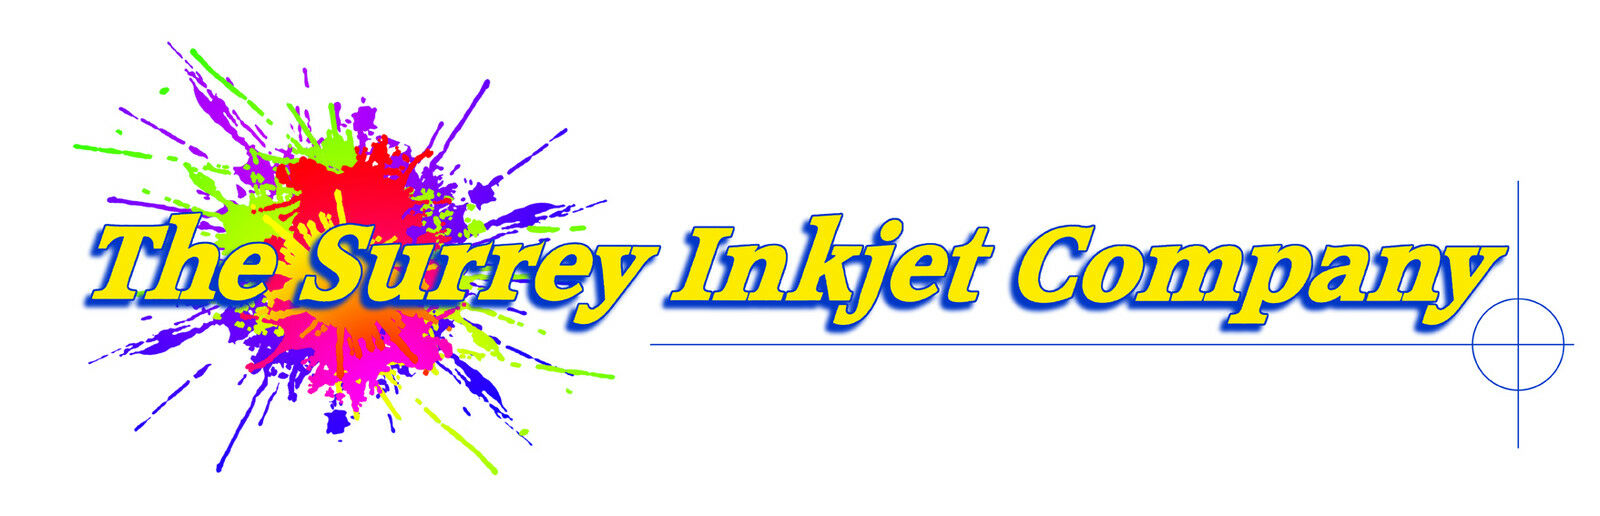 The Surrey Inkjet Company